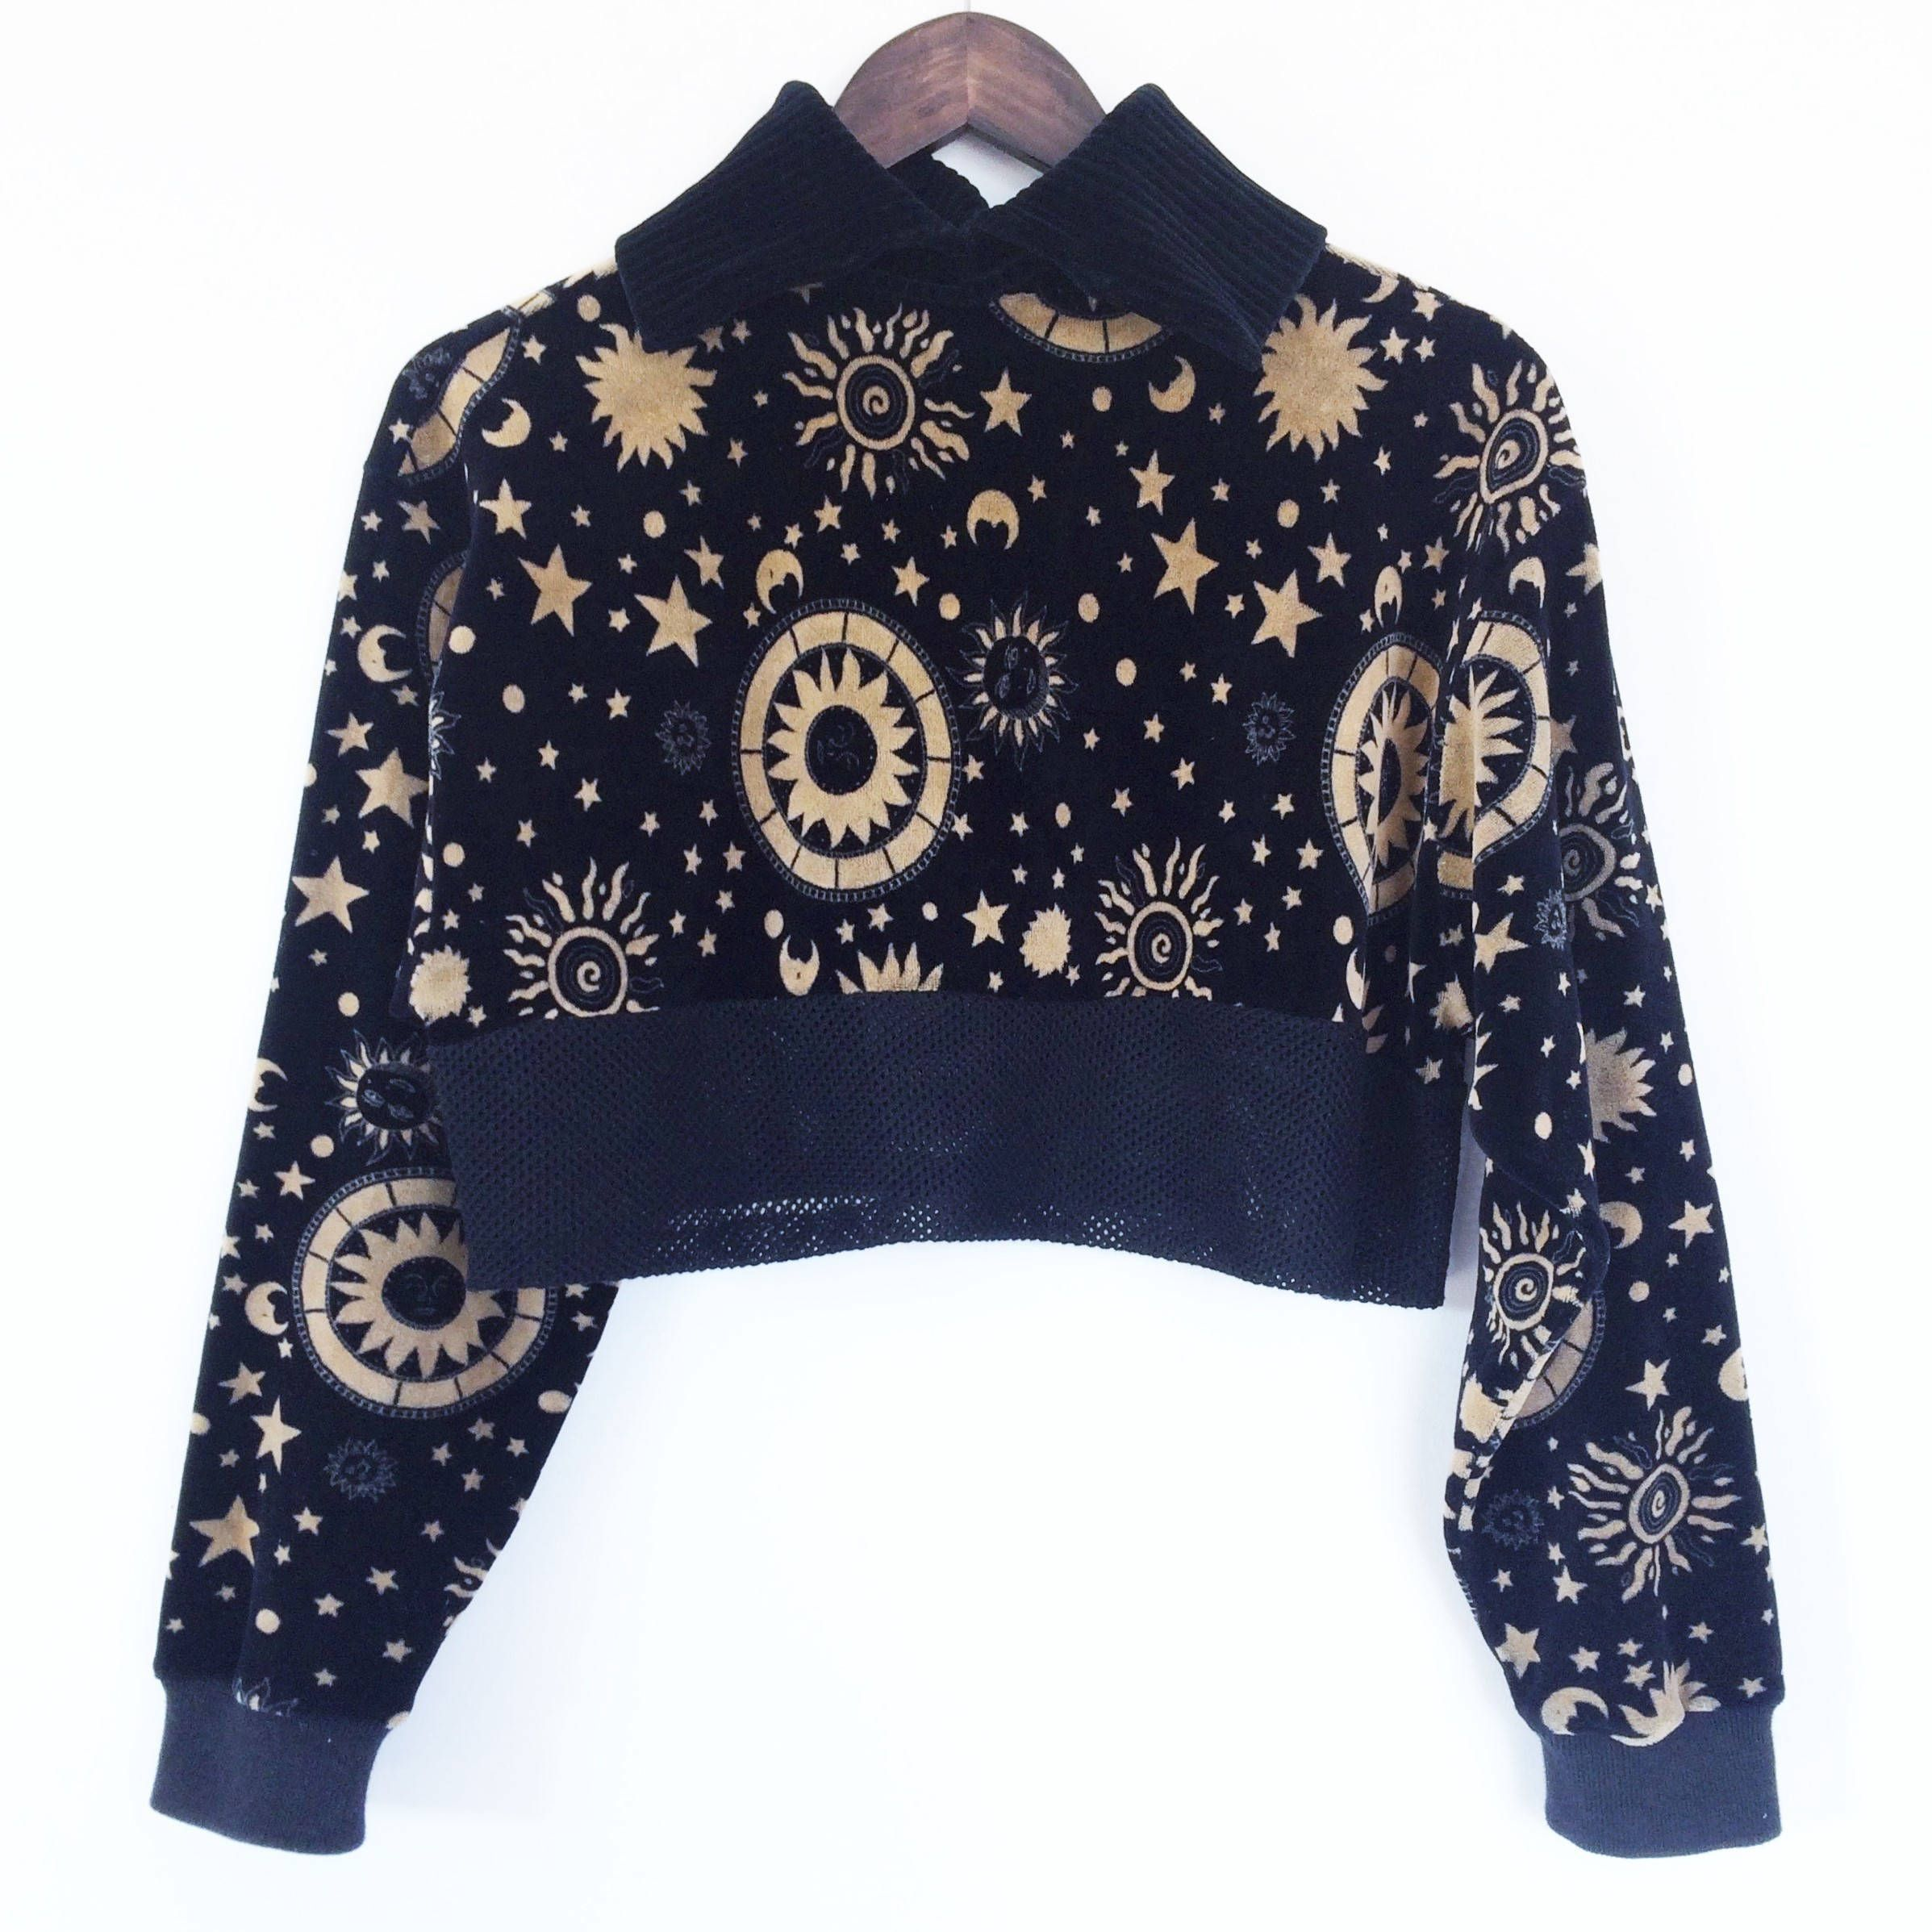 9d04830ea3 Zodiac Vintage 90s Celestial print top in velour with sporty mesh trim -  one of a